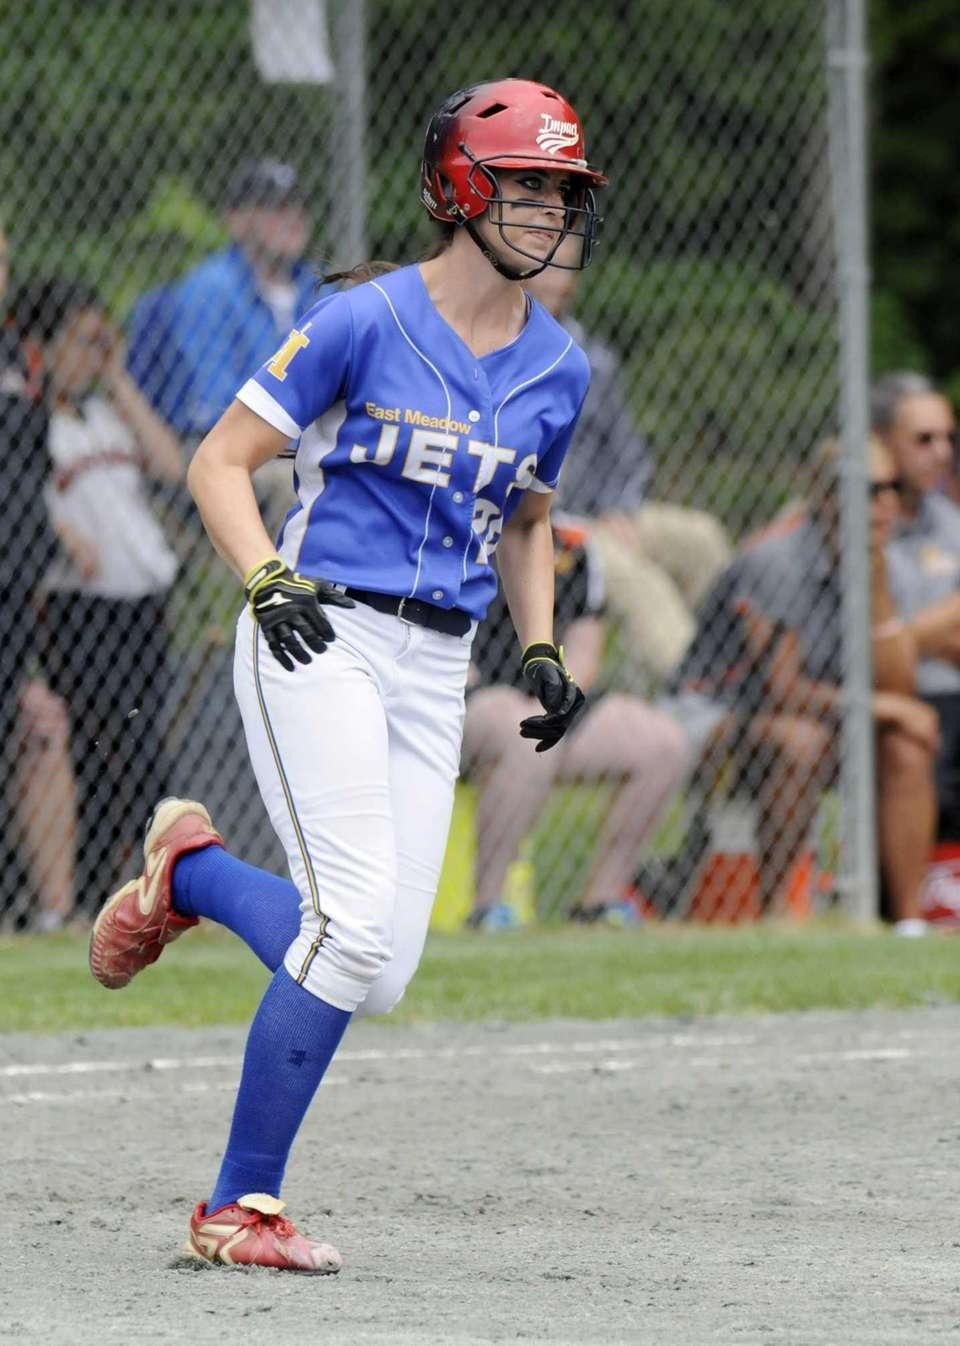 East Meadow's Kerri Shapiro runs the diamond after